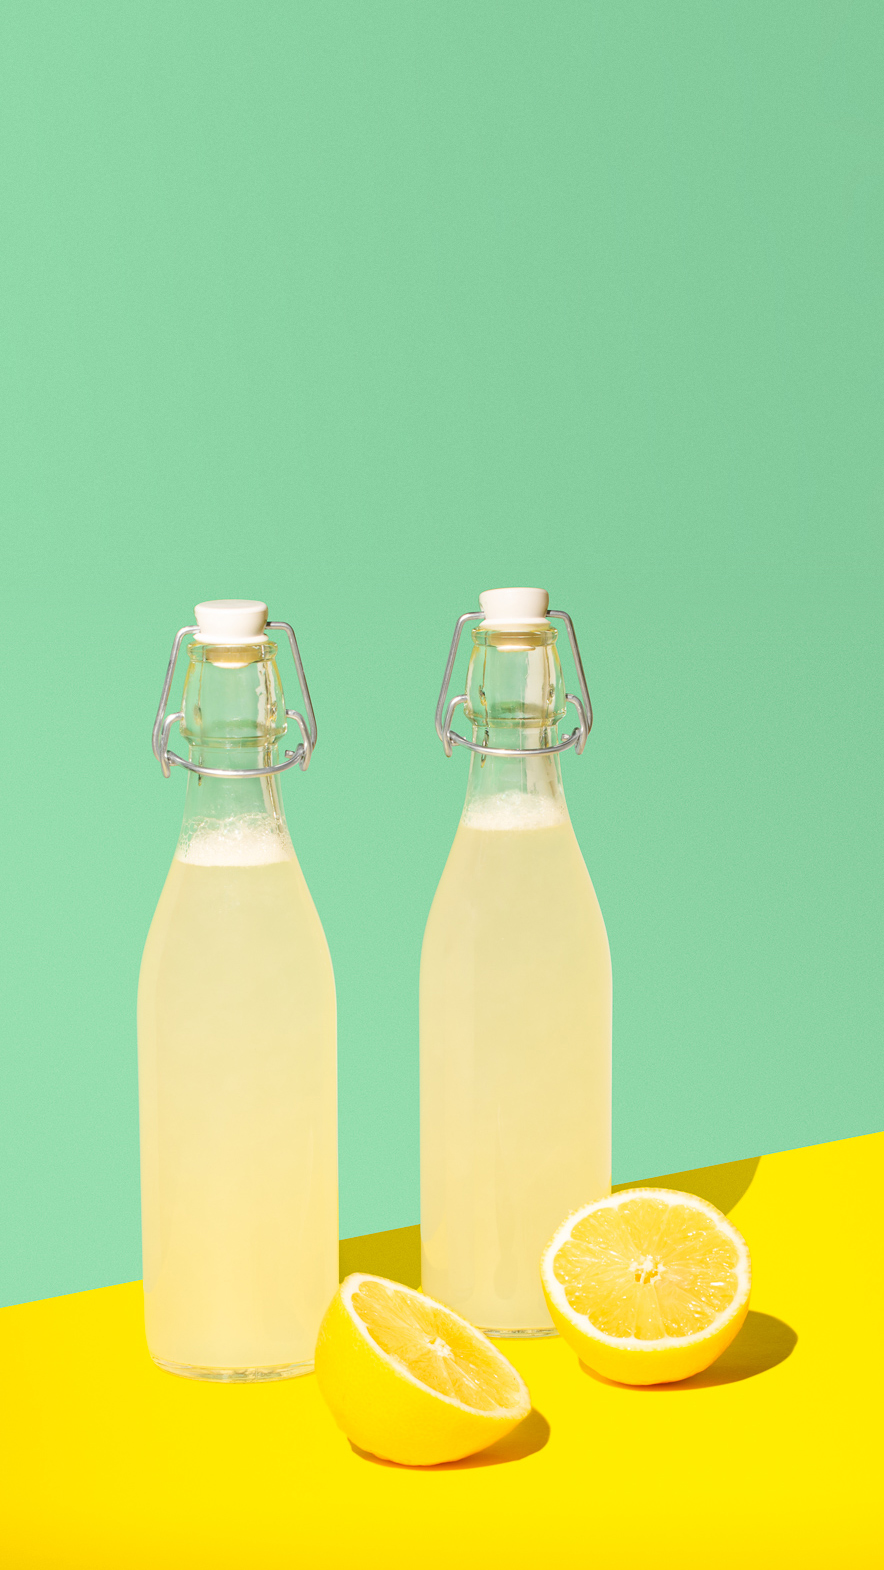 Homemade lemonade - food and beverage photography